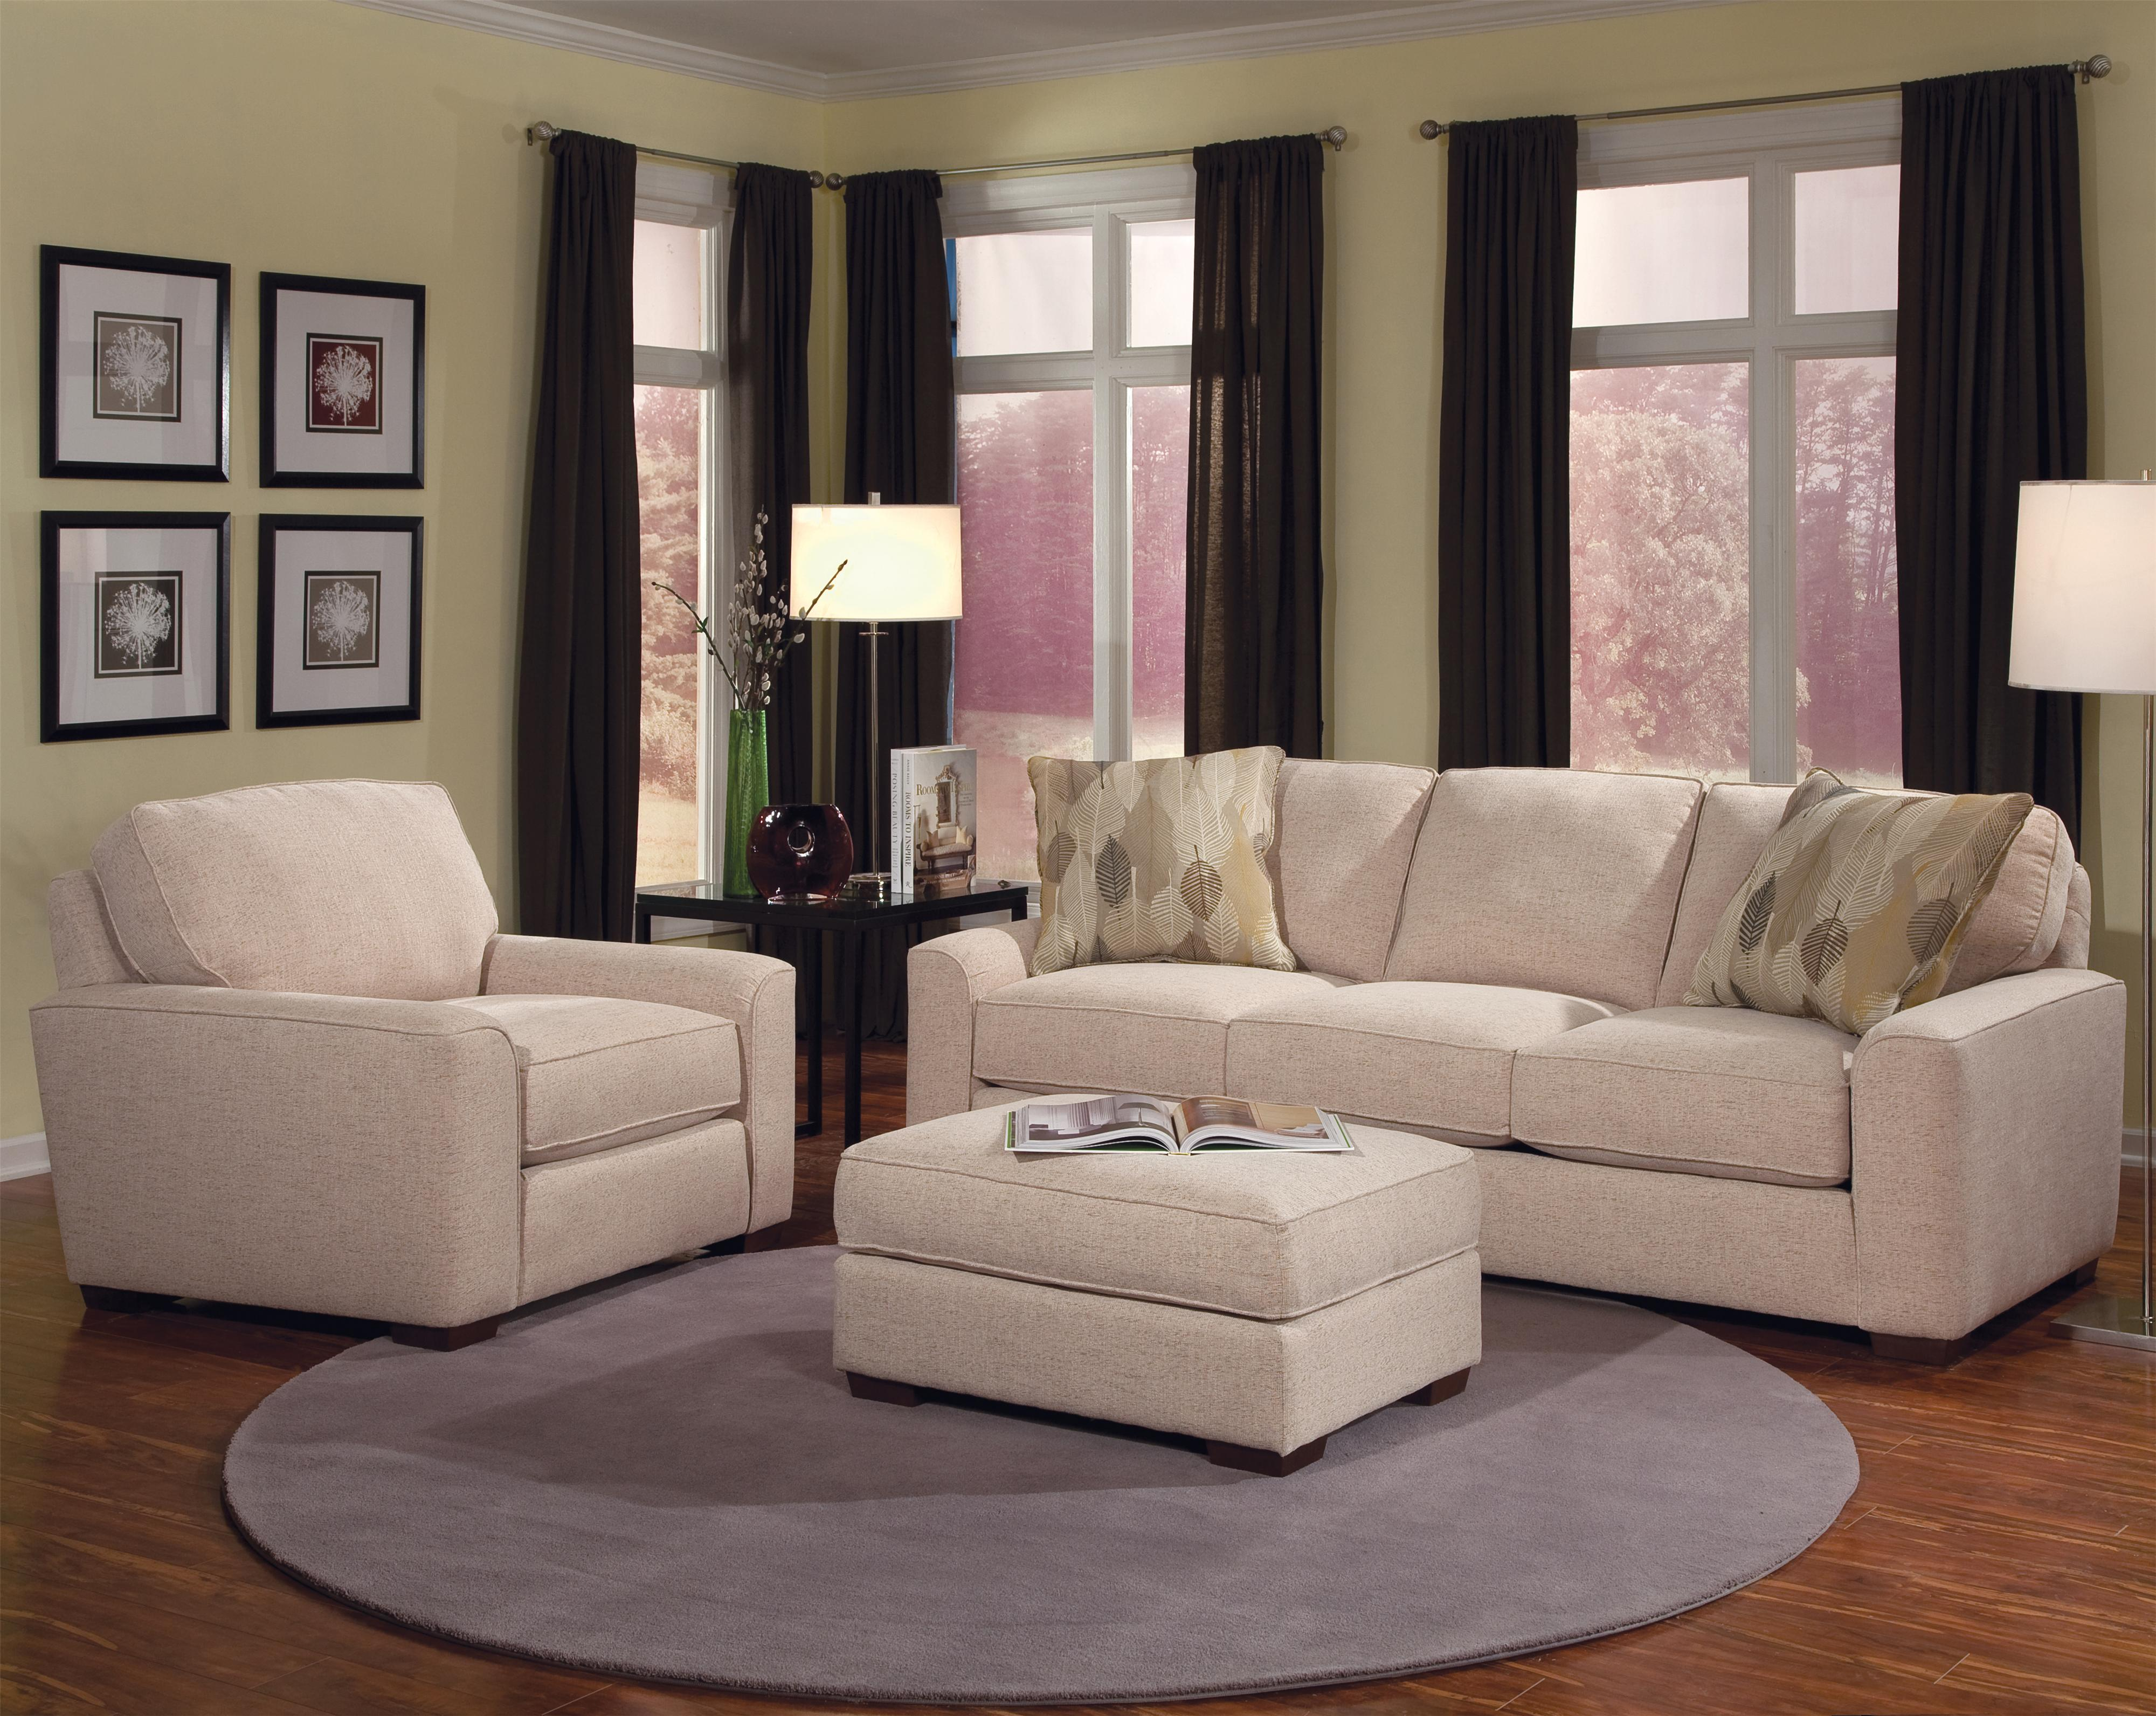 Build Your Own (8000 Series) Stationary Living Room Group by Smith Brothers at Saugerties Furniture Mart